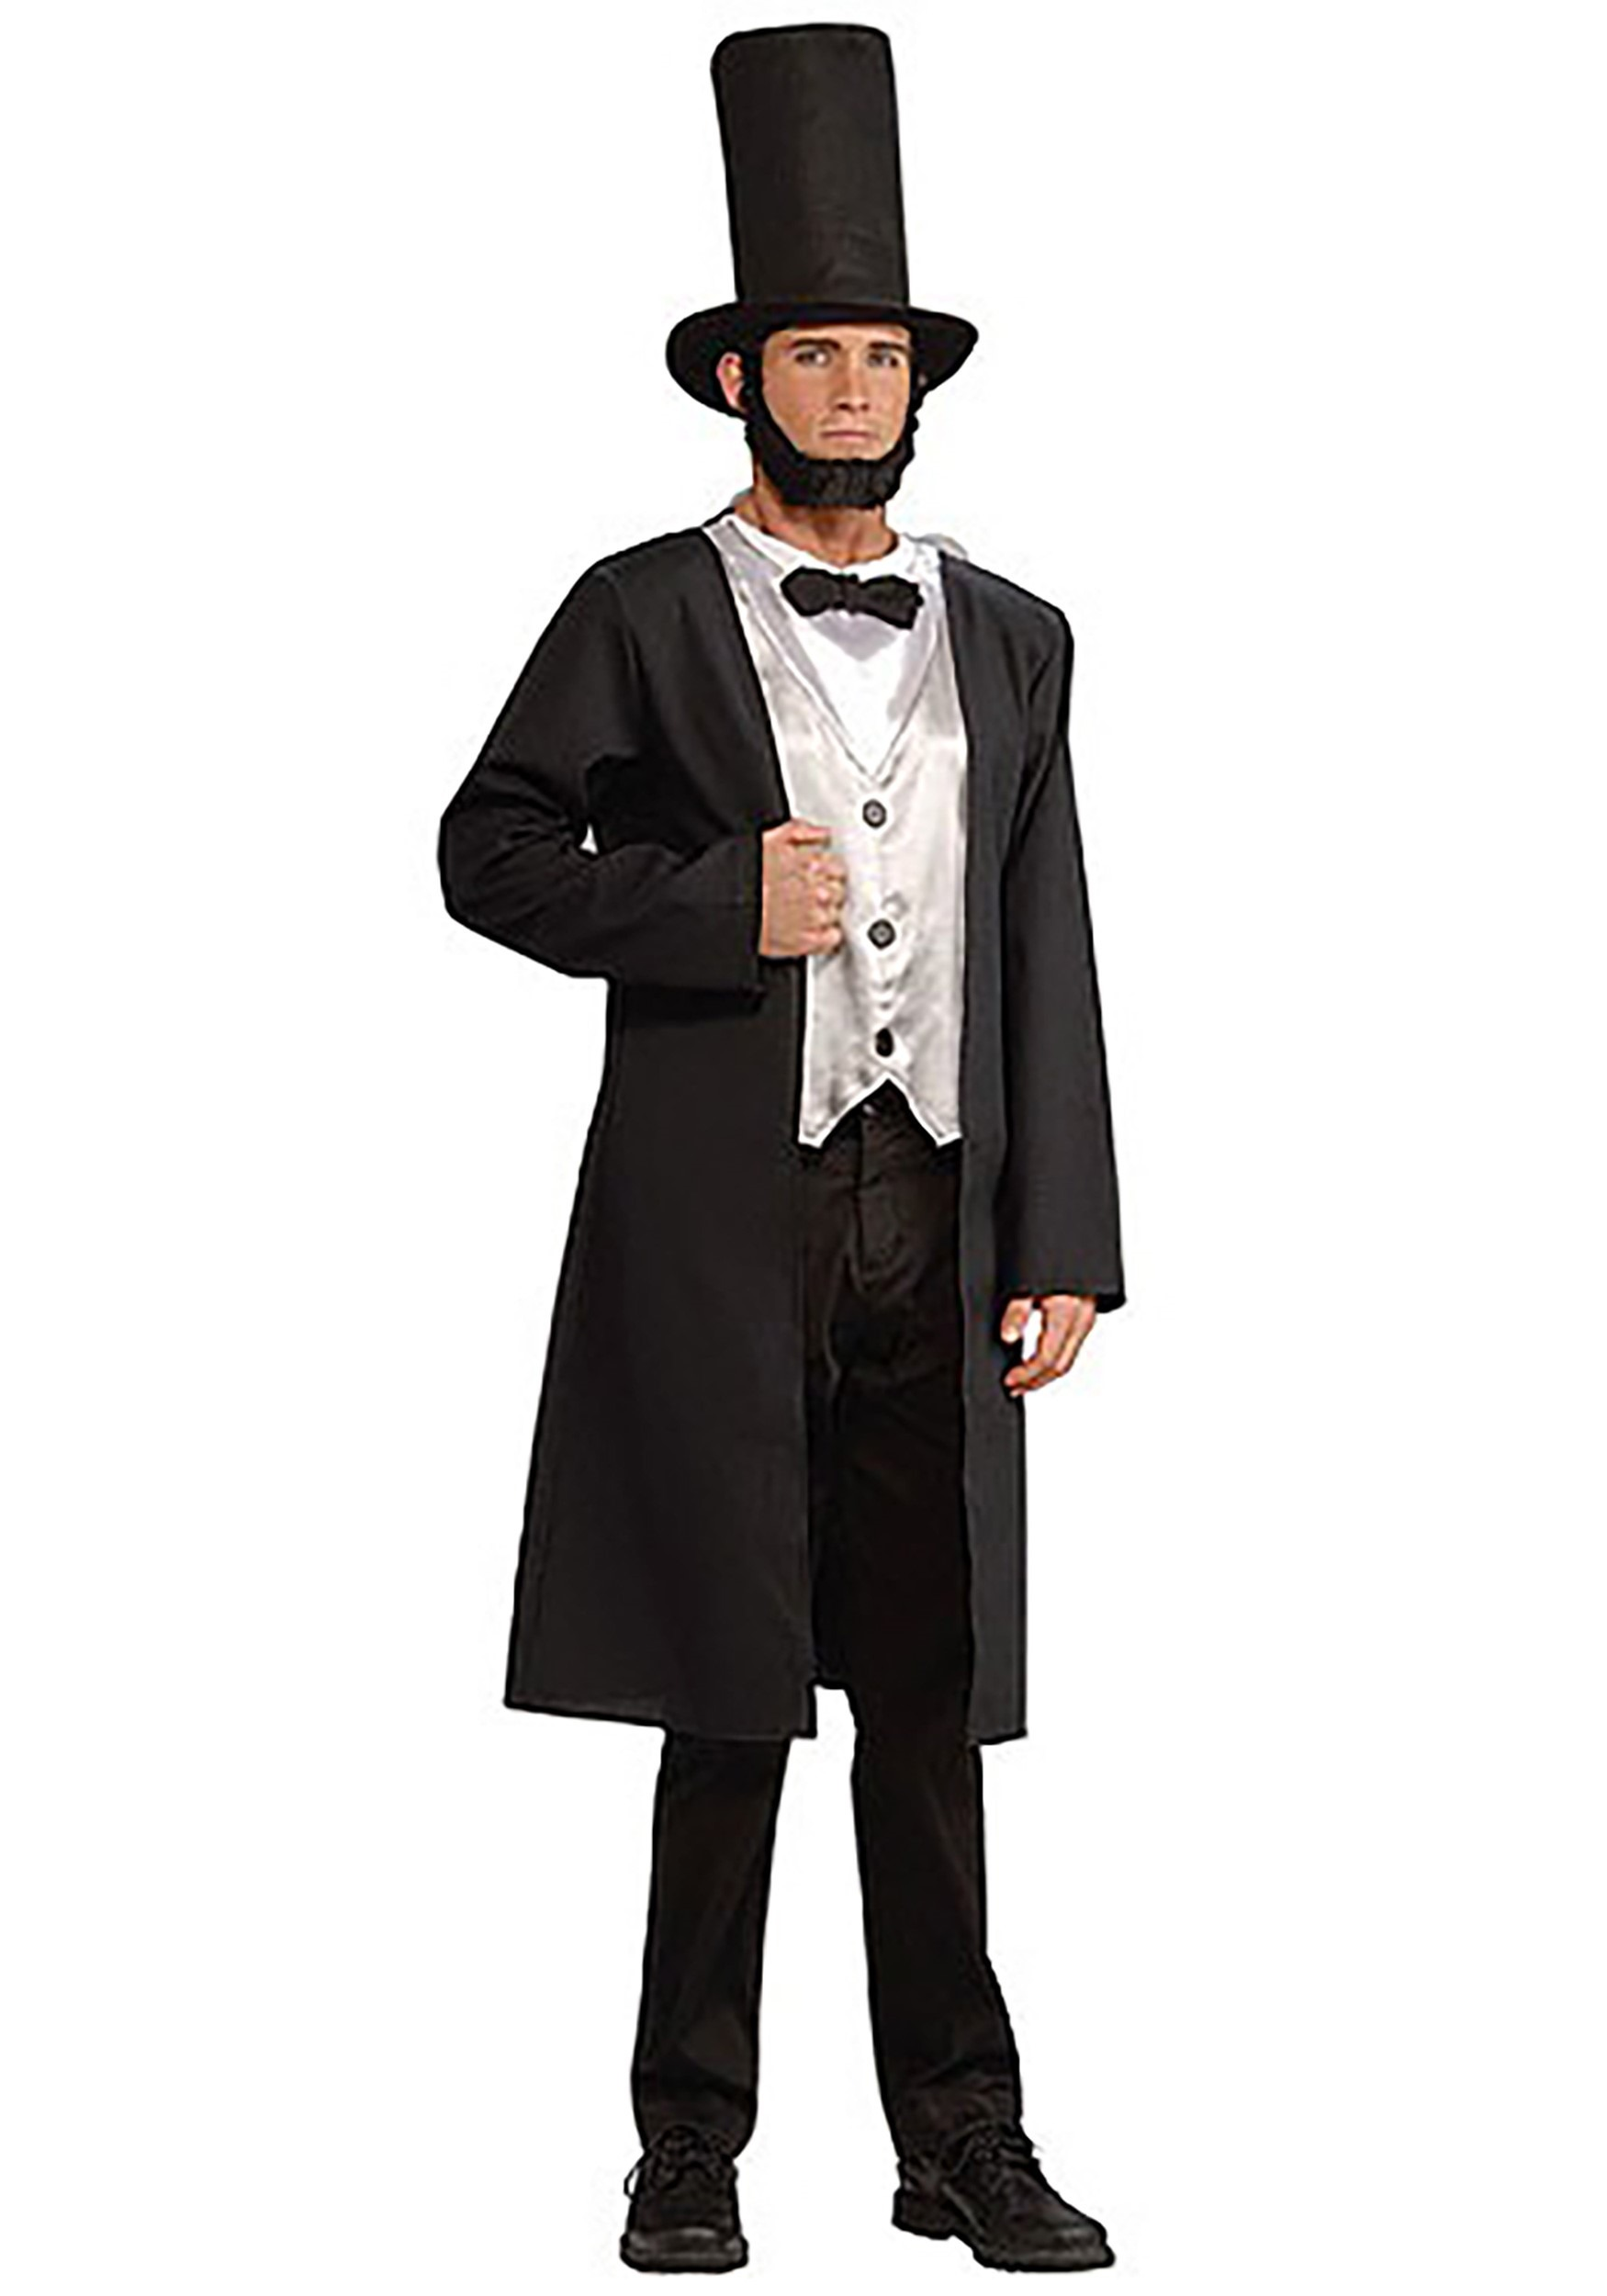 Abe Lincoln Costume for Men